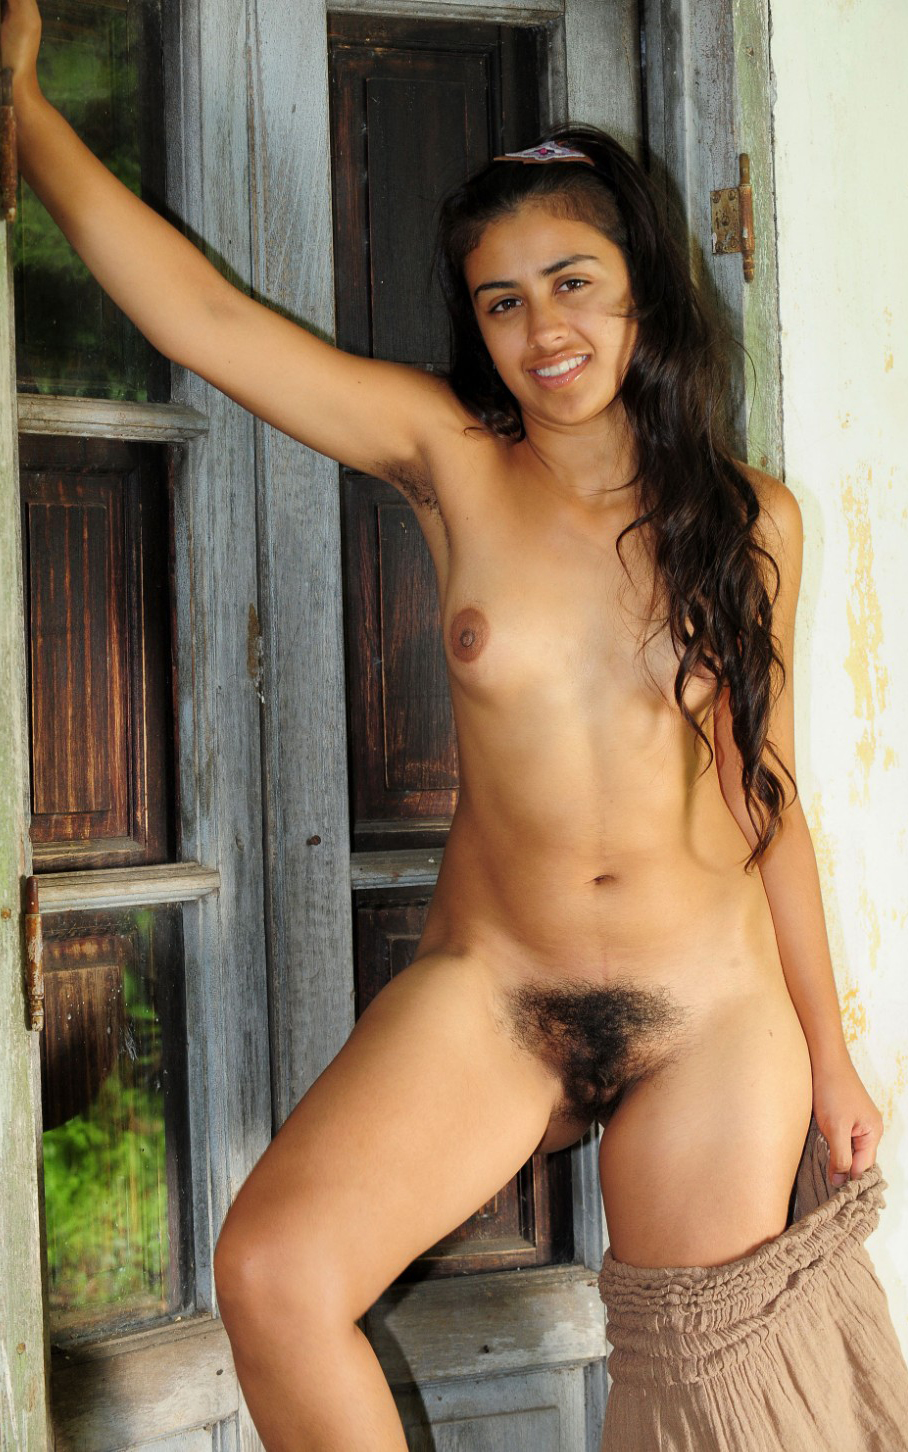 america hot naked pictures